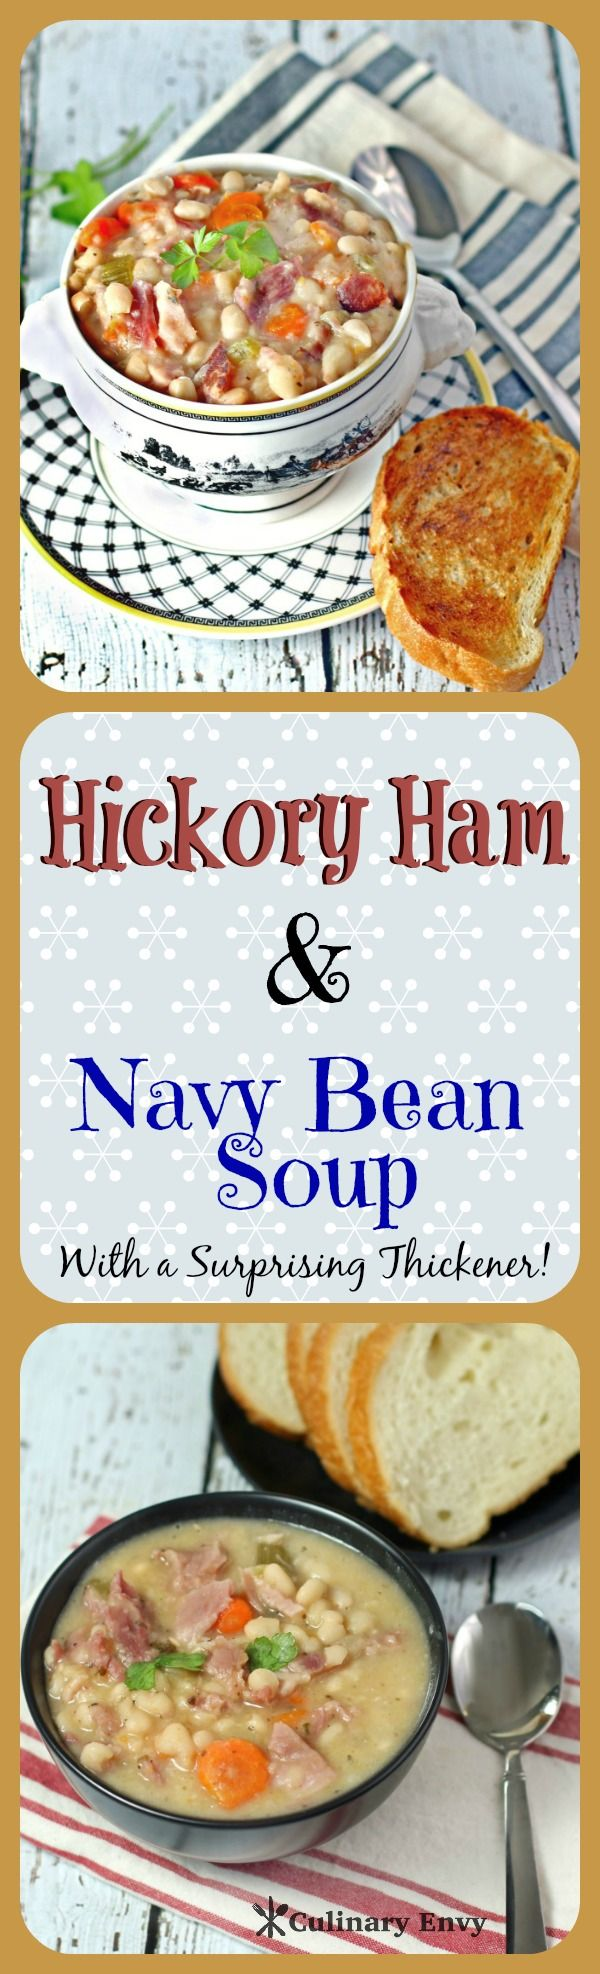 Hickory Ham and Navy Bean Soup is an easy, delicious, economical, heartwarming, one-pot soup that will warm you up on a cold night!